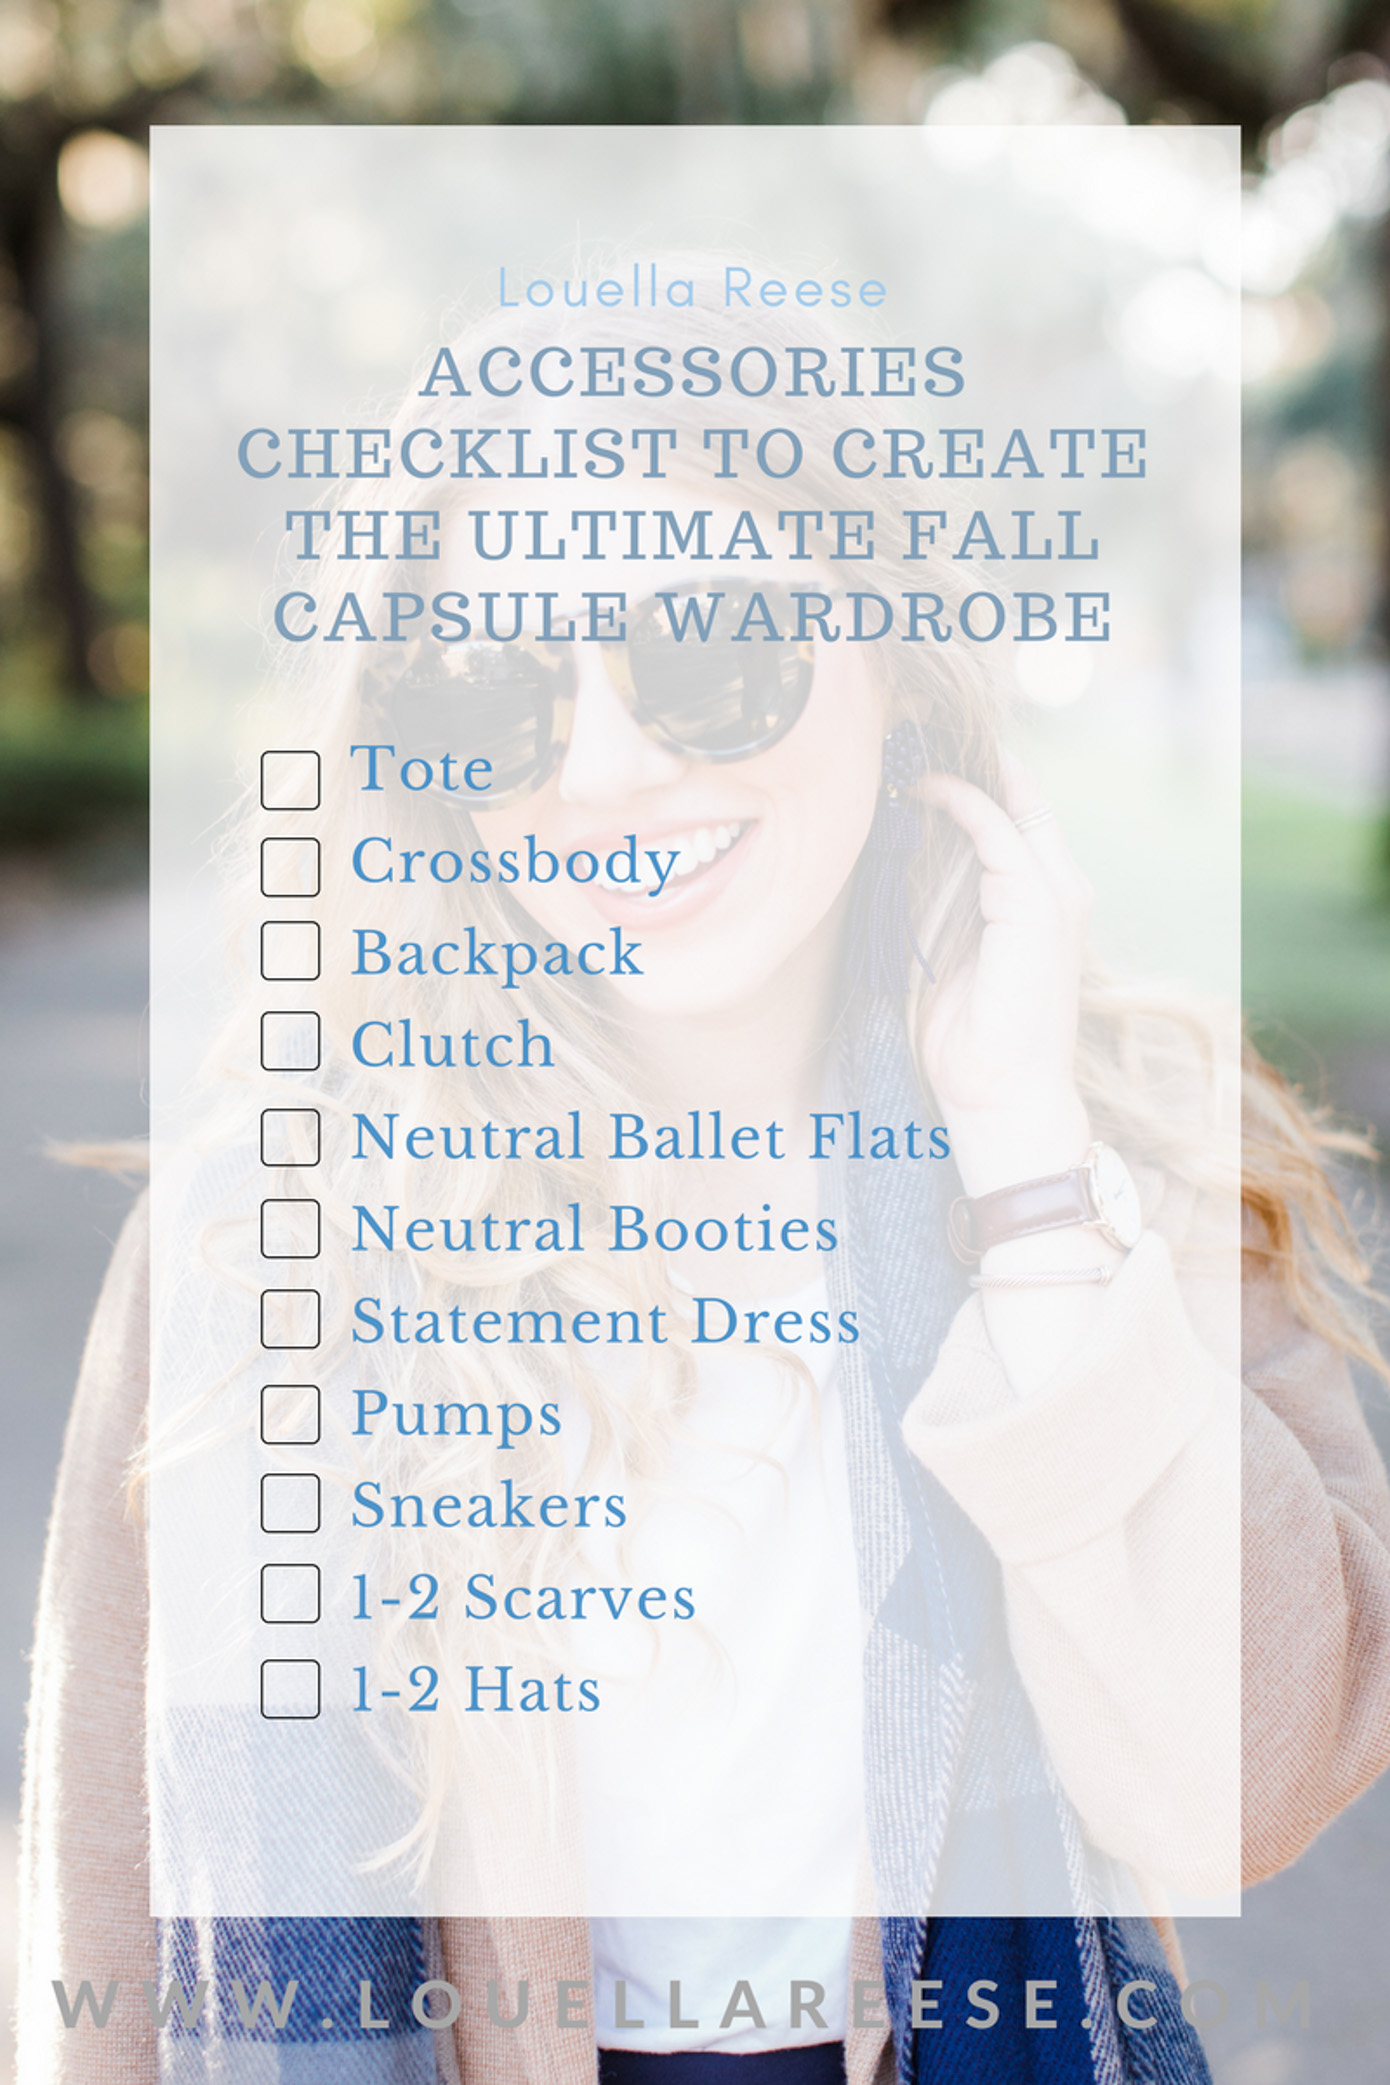 How to Build a Fall Capsule Wardrobe | Fall Capsule Wardrobe Accessories Check List | Louella Reese Life & Style Blog